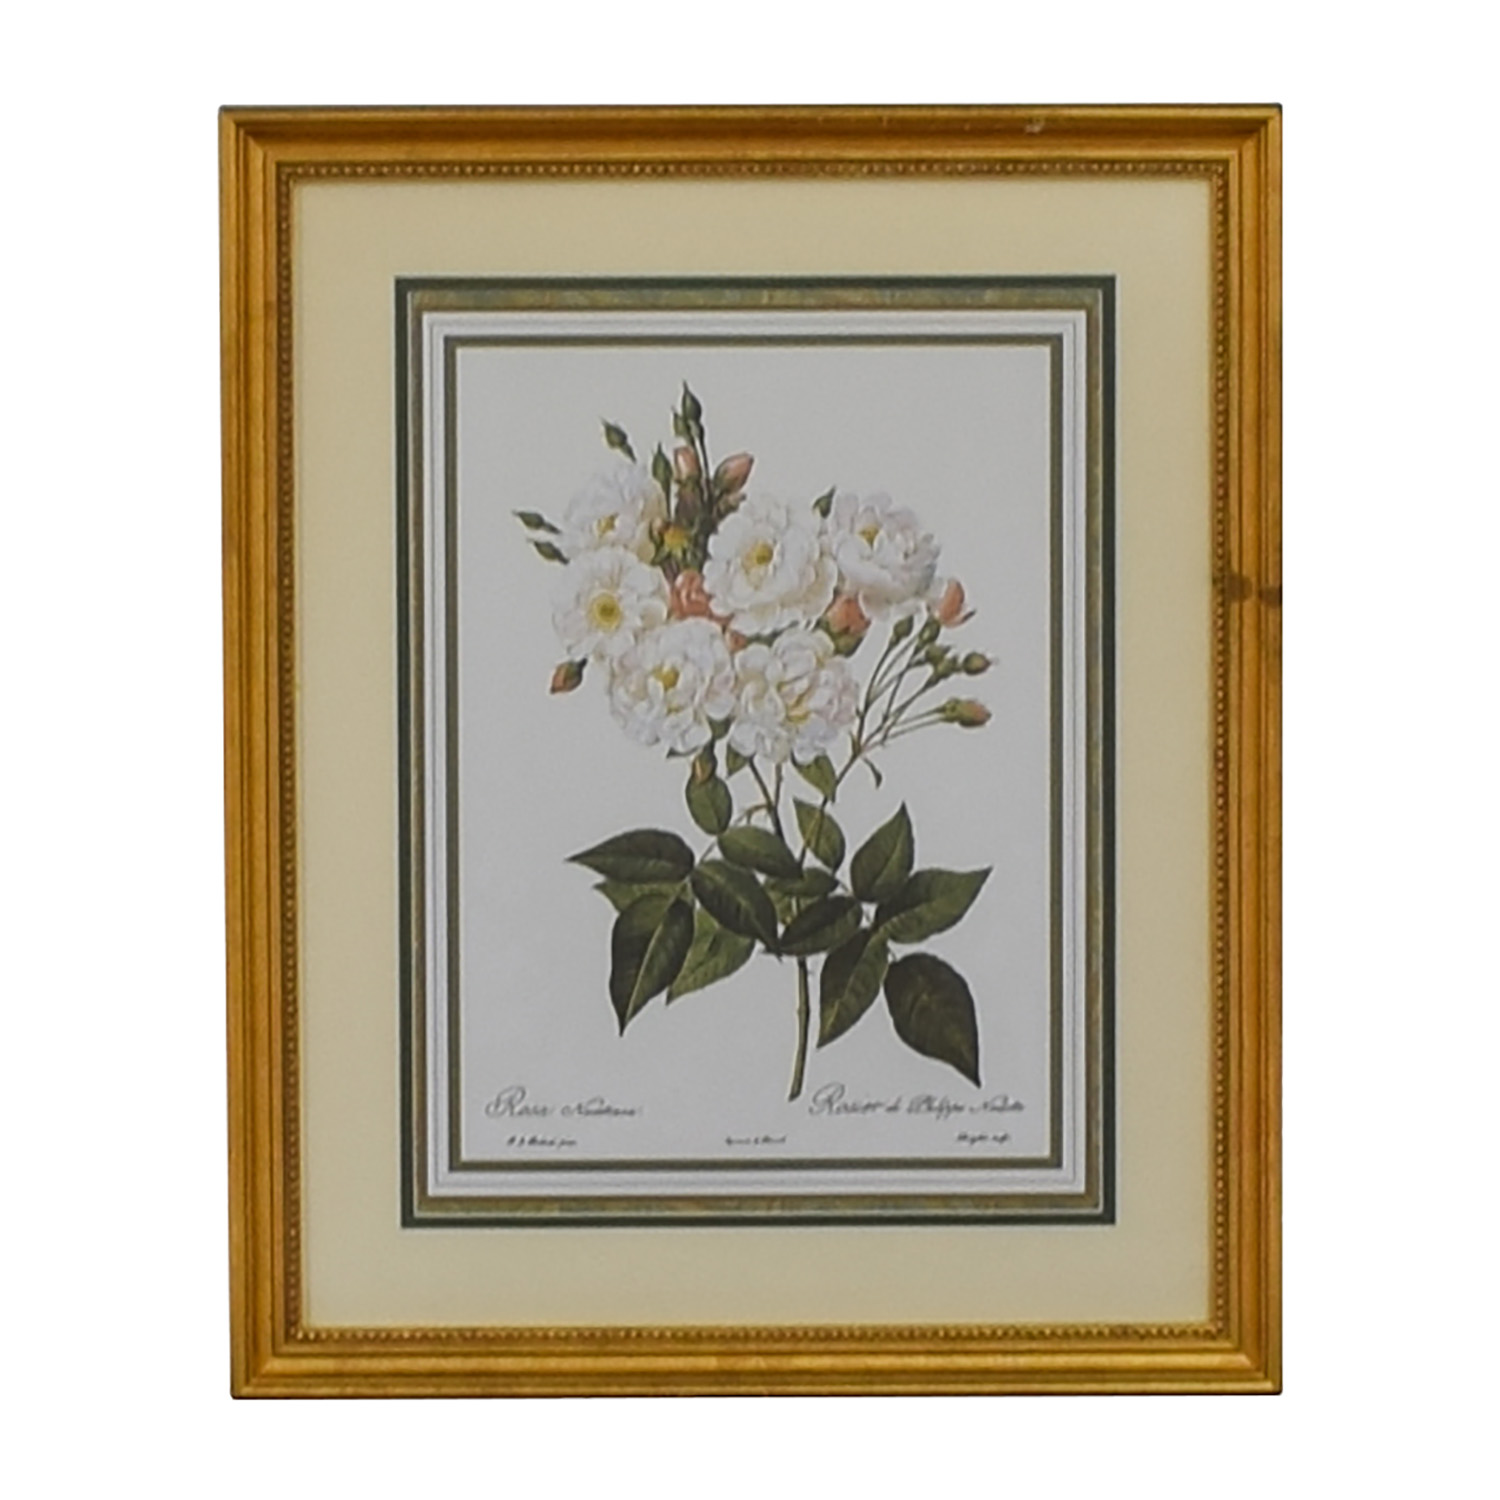 Chelsea Golden Chelsea Golden Rosa Noisettiana The Museum Collection Floral Prints nj